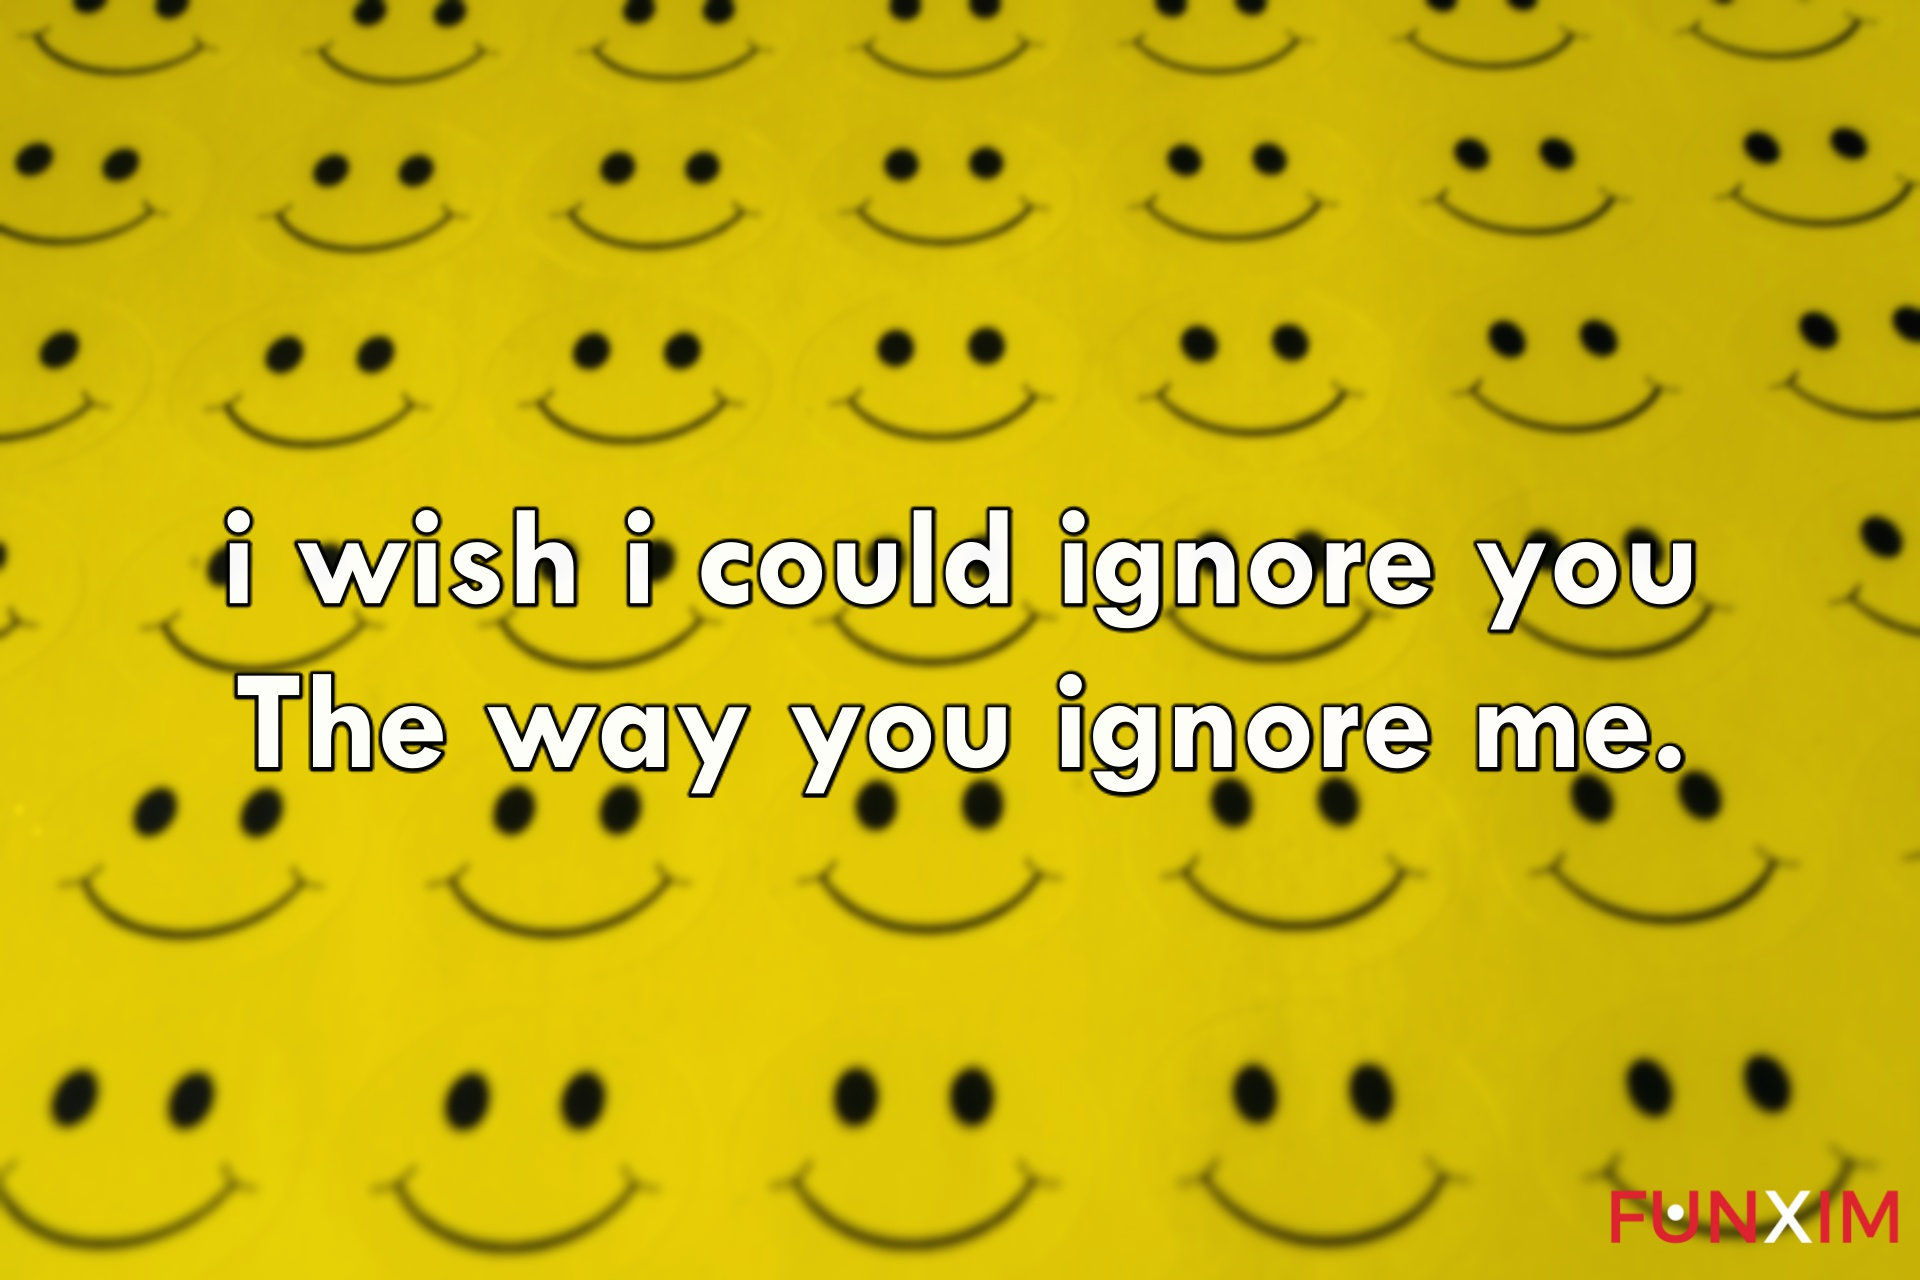 i wish i could ignore you the way you ignore me.